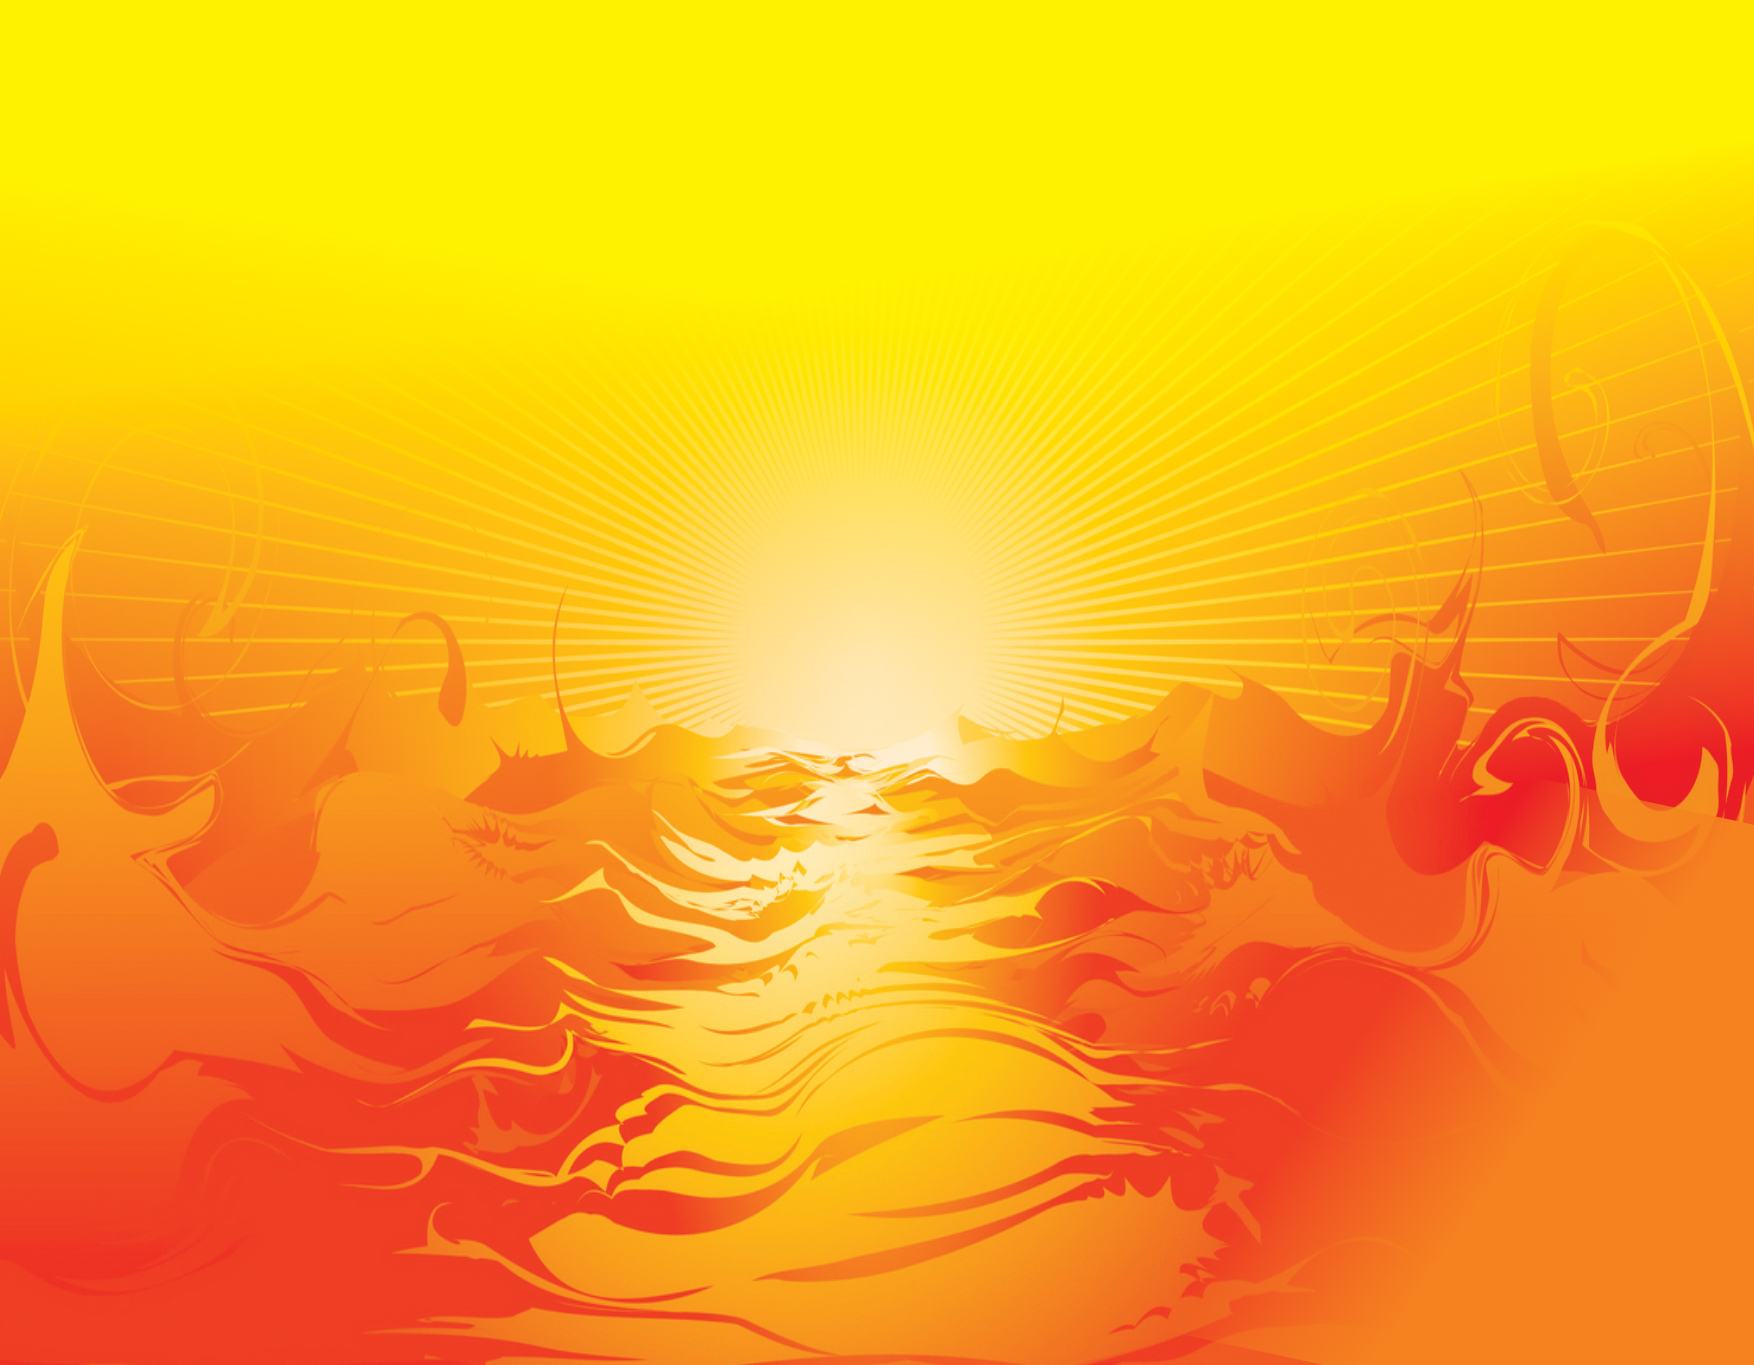 Chhath Puja Background sun rise and Clipart red and yellow.